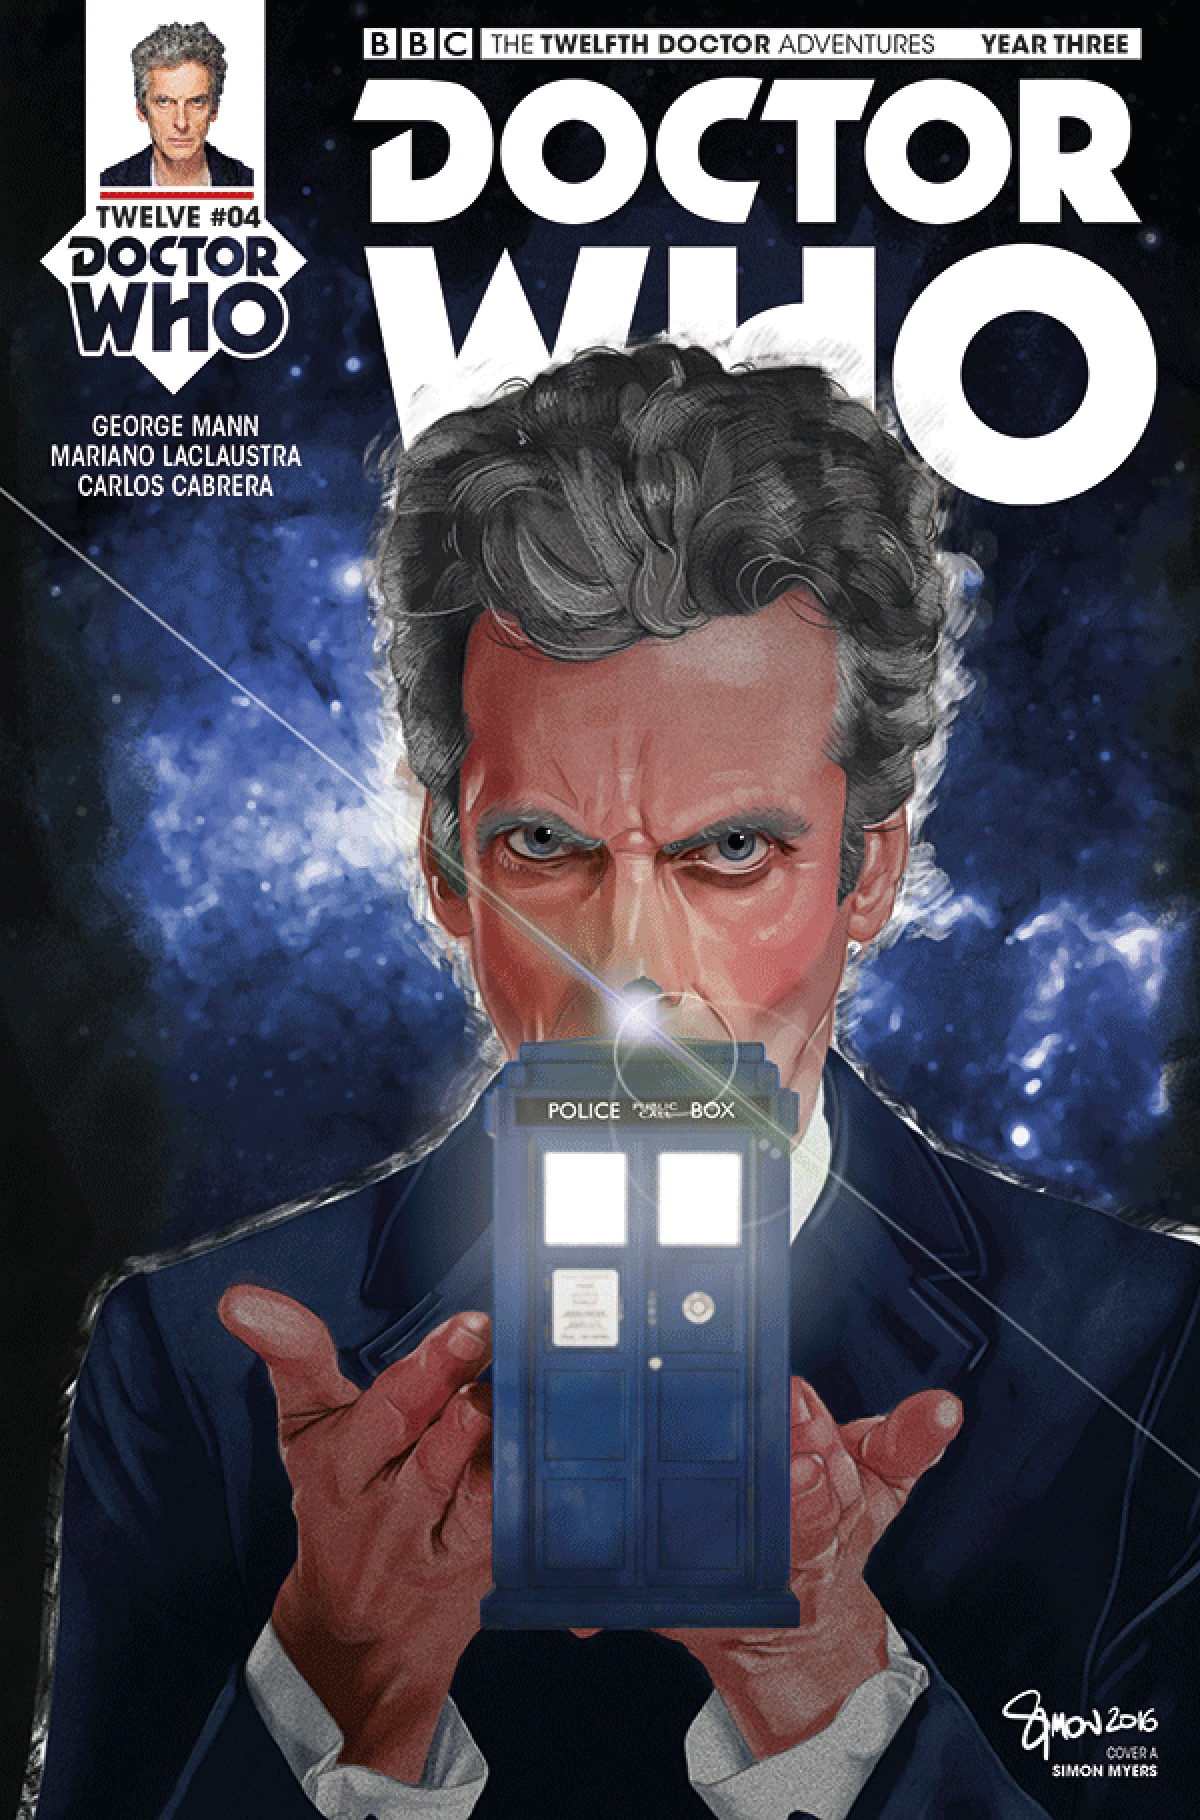 DOCTOR WHO 12TH YEAR THREE #4 CVR A MYERS